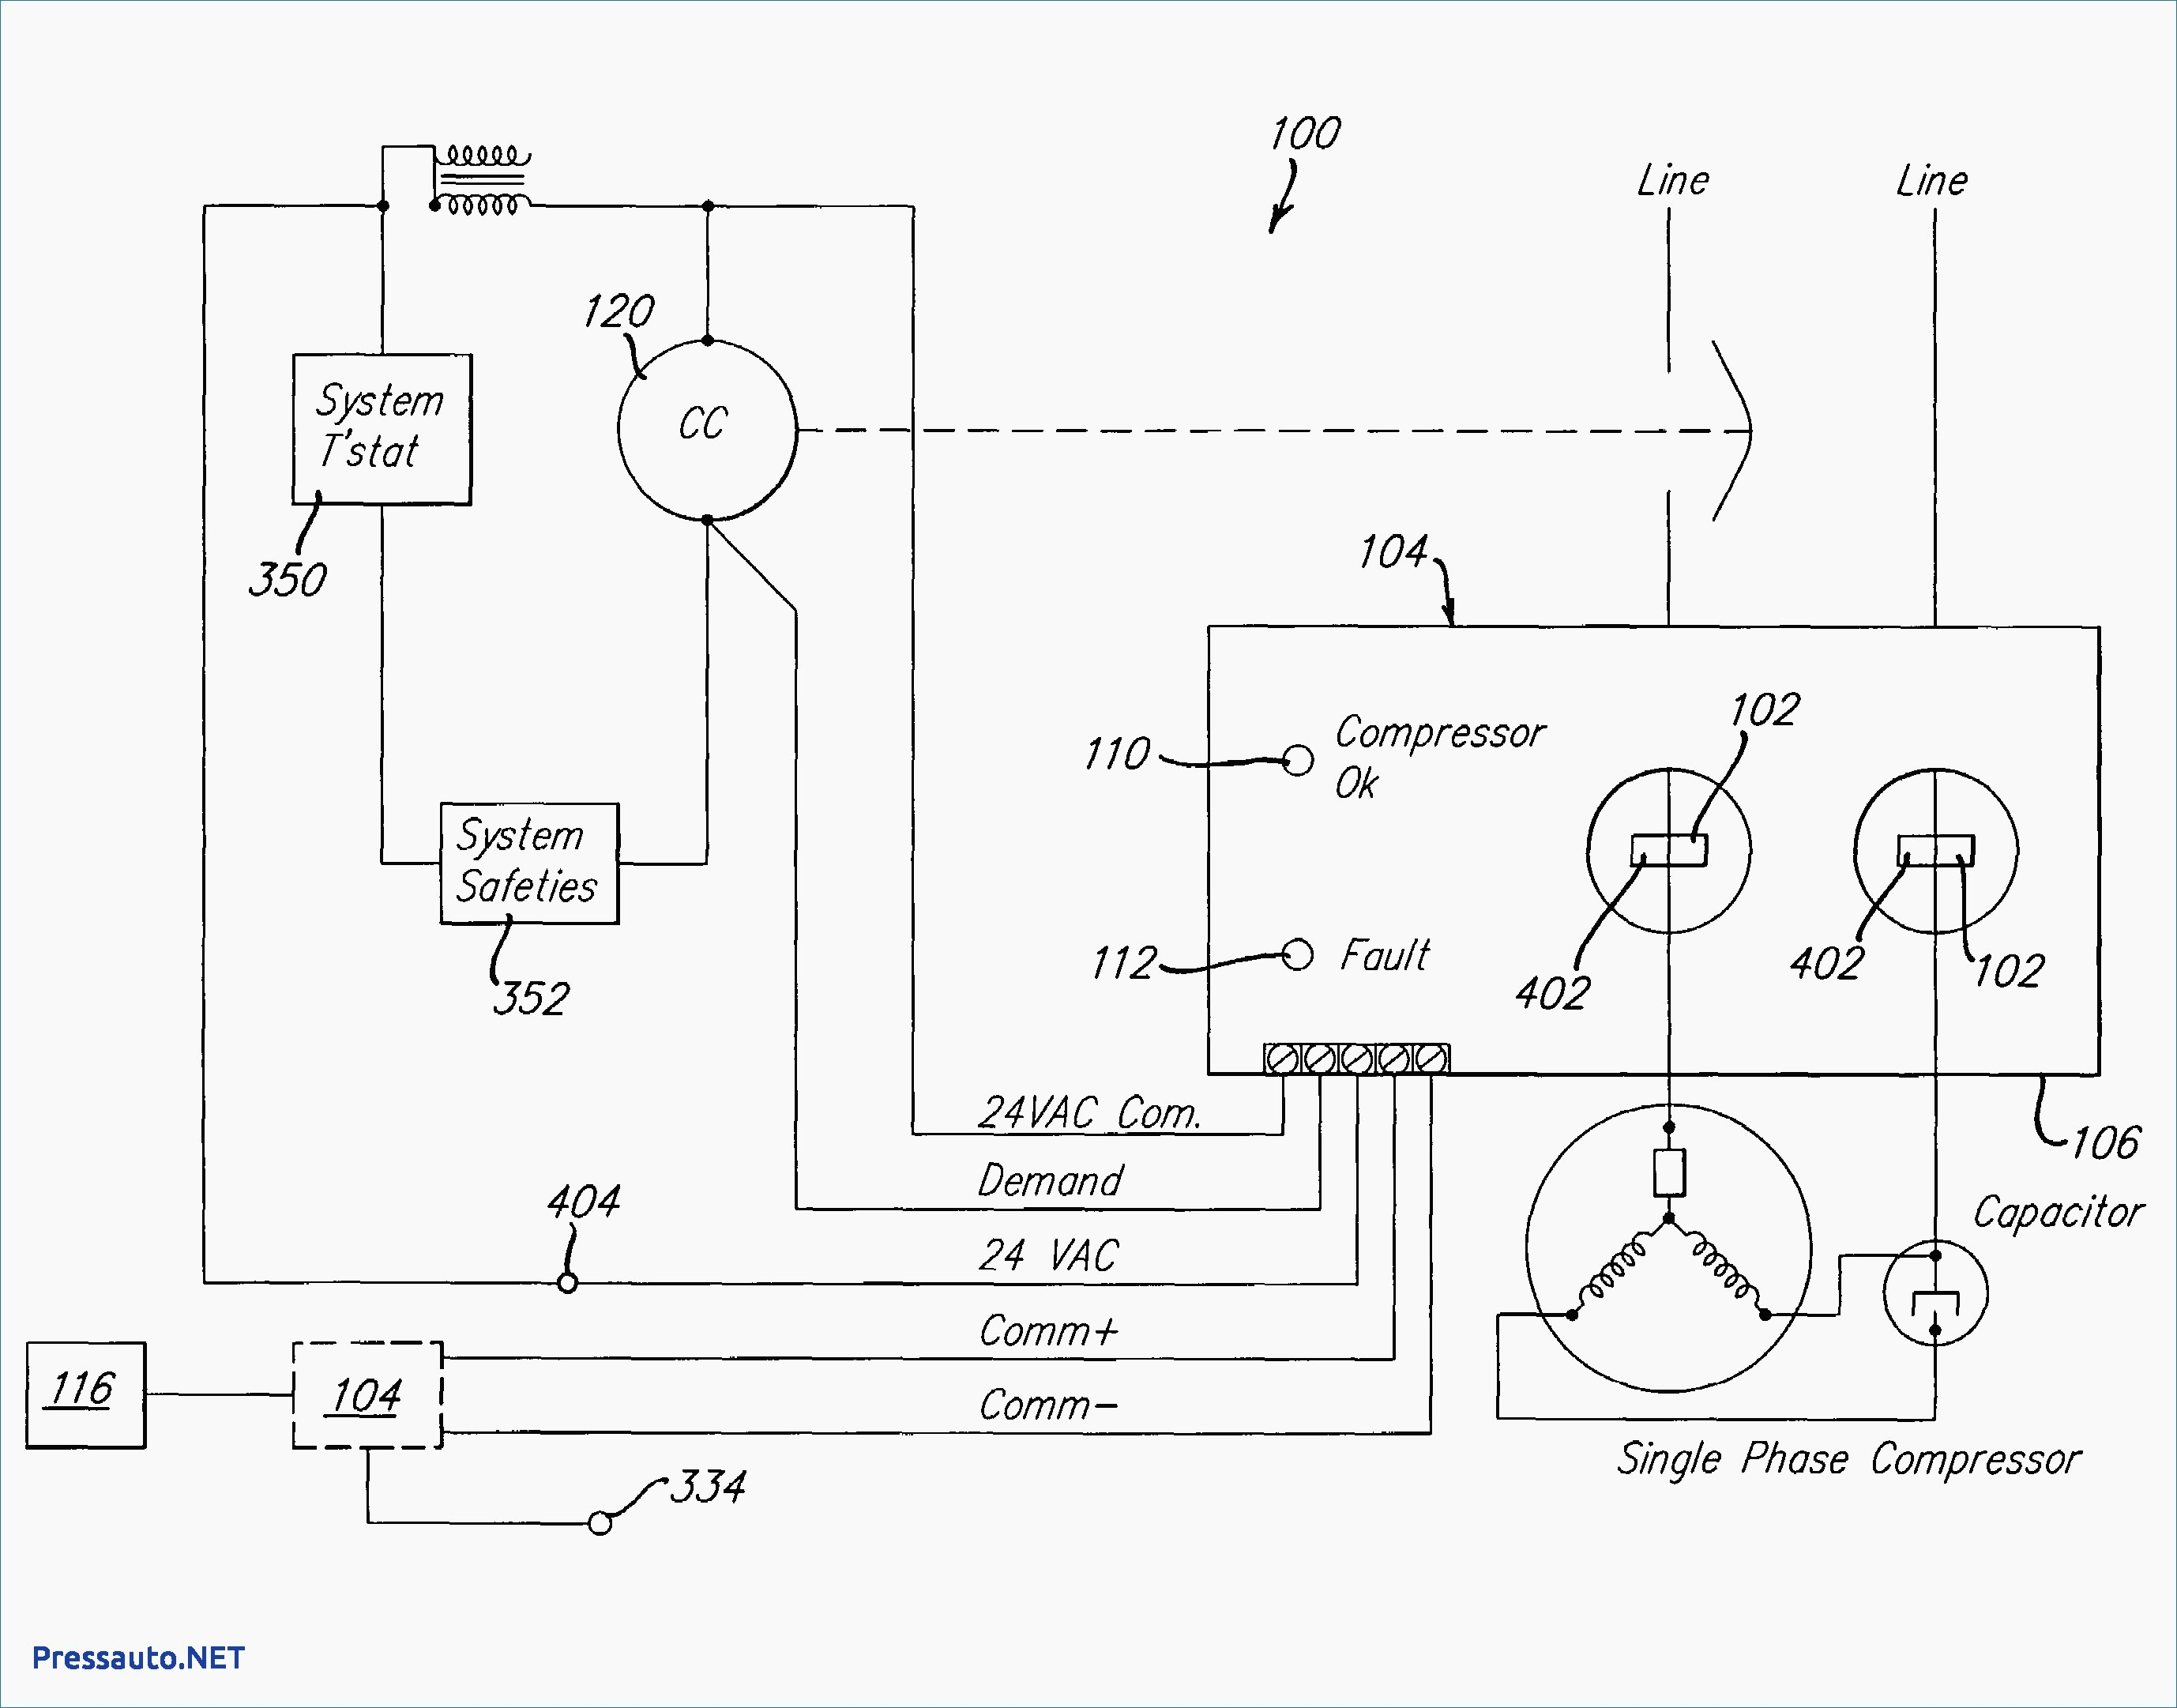 110 fan wiring diagram free picture schematic wiring diagram110 fan wiring diagram wiring diagrams bib110 fan wiring diagram electrical wiring diagram 110 fan wiring